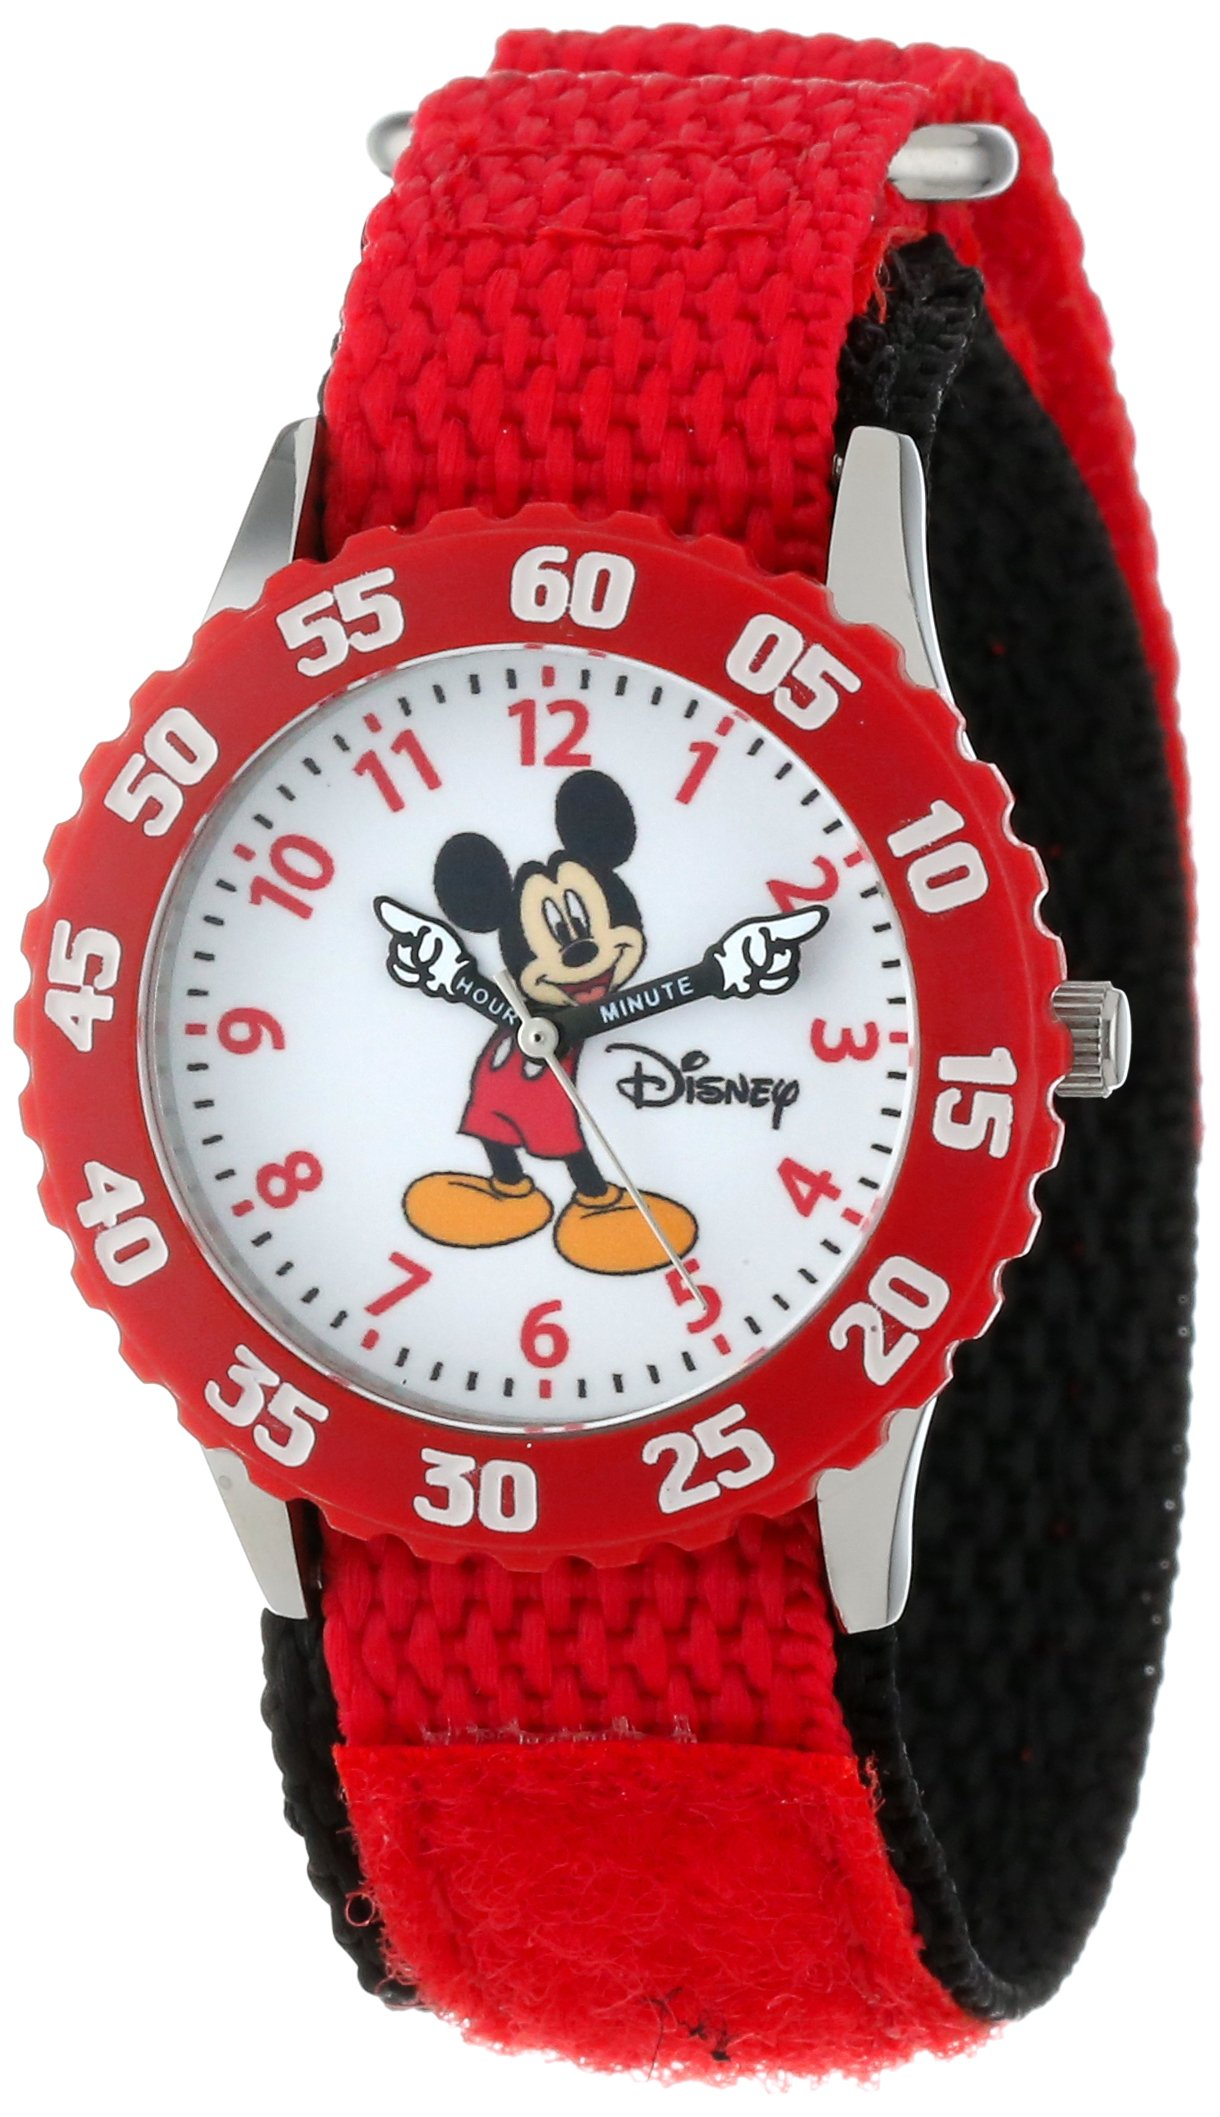 Disney Kids' W000229 Mickey Mouse Stainless Steel Time Teacher Watch with Red Nylon Band by Disney